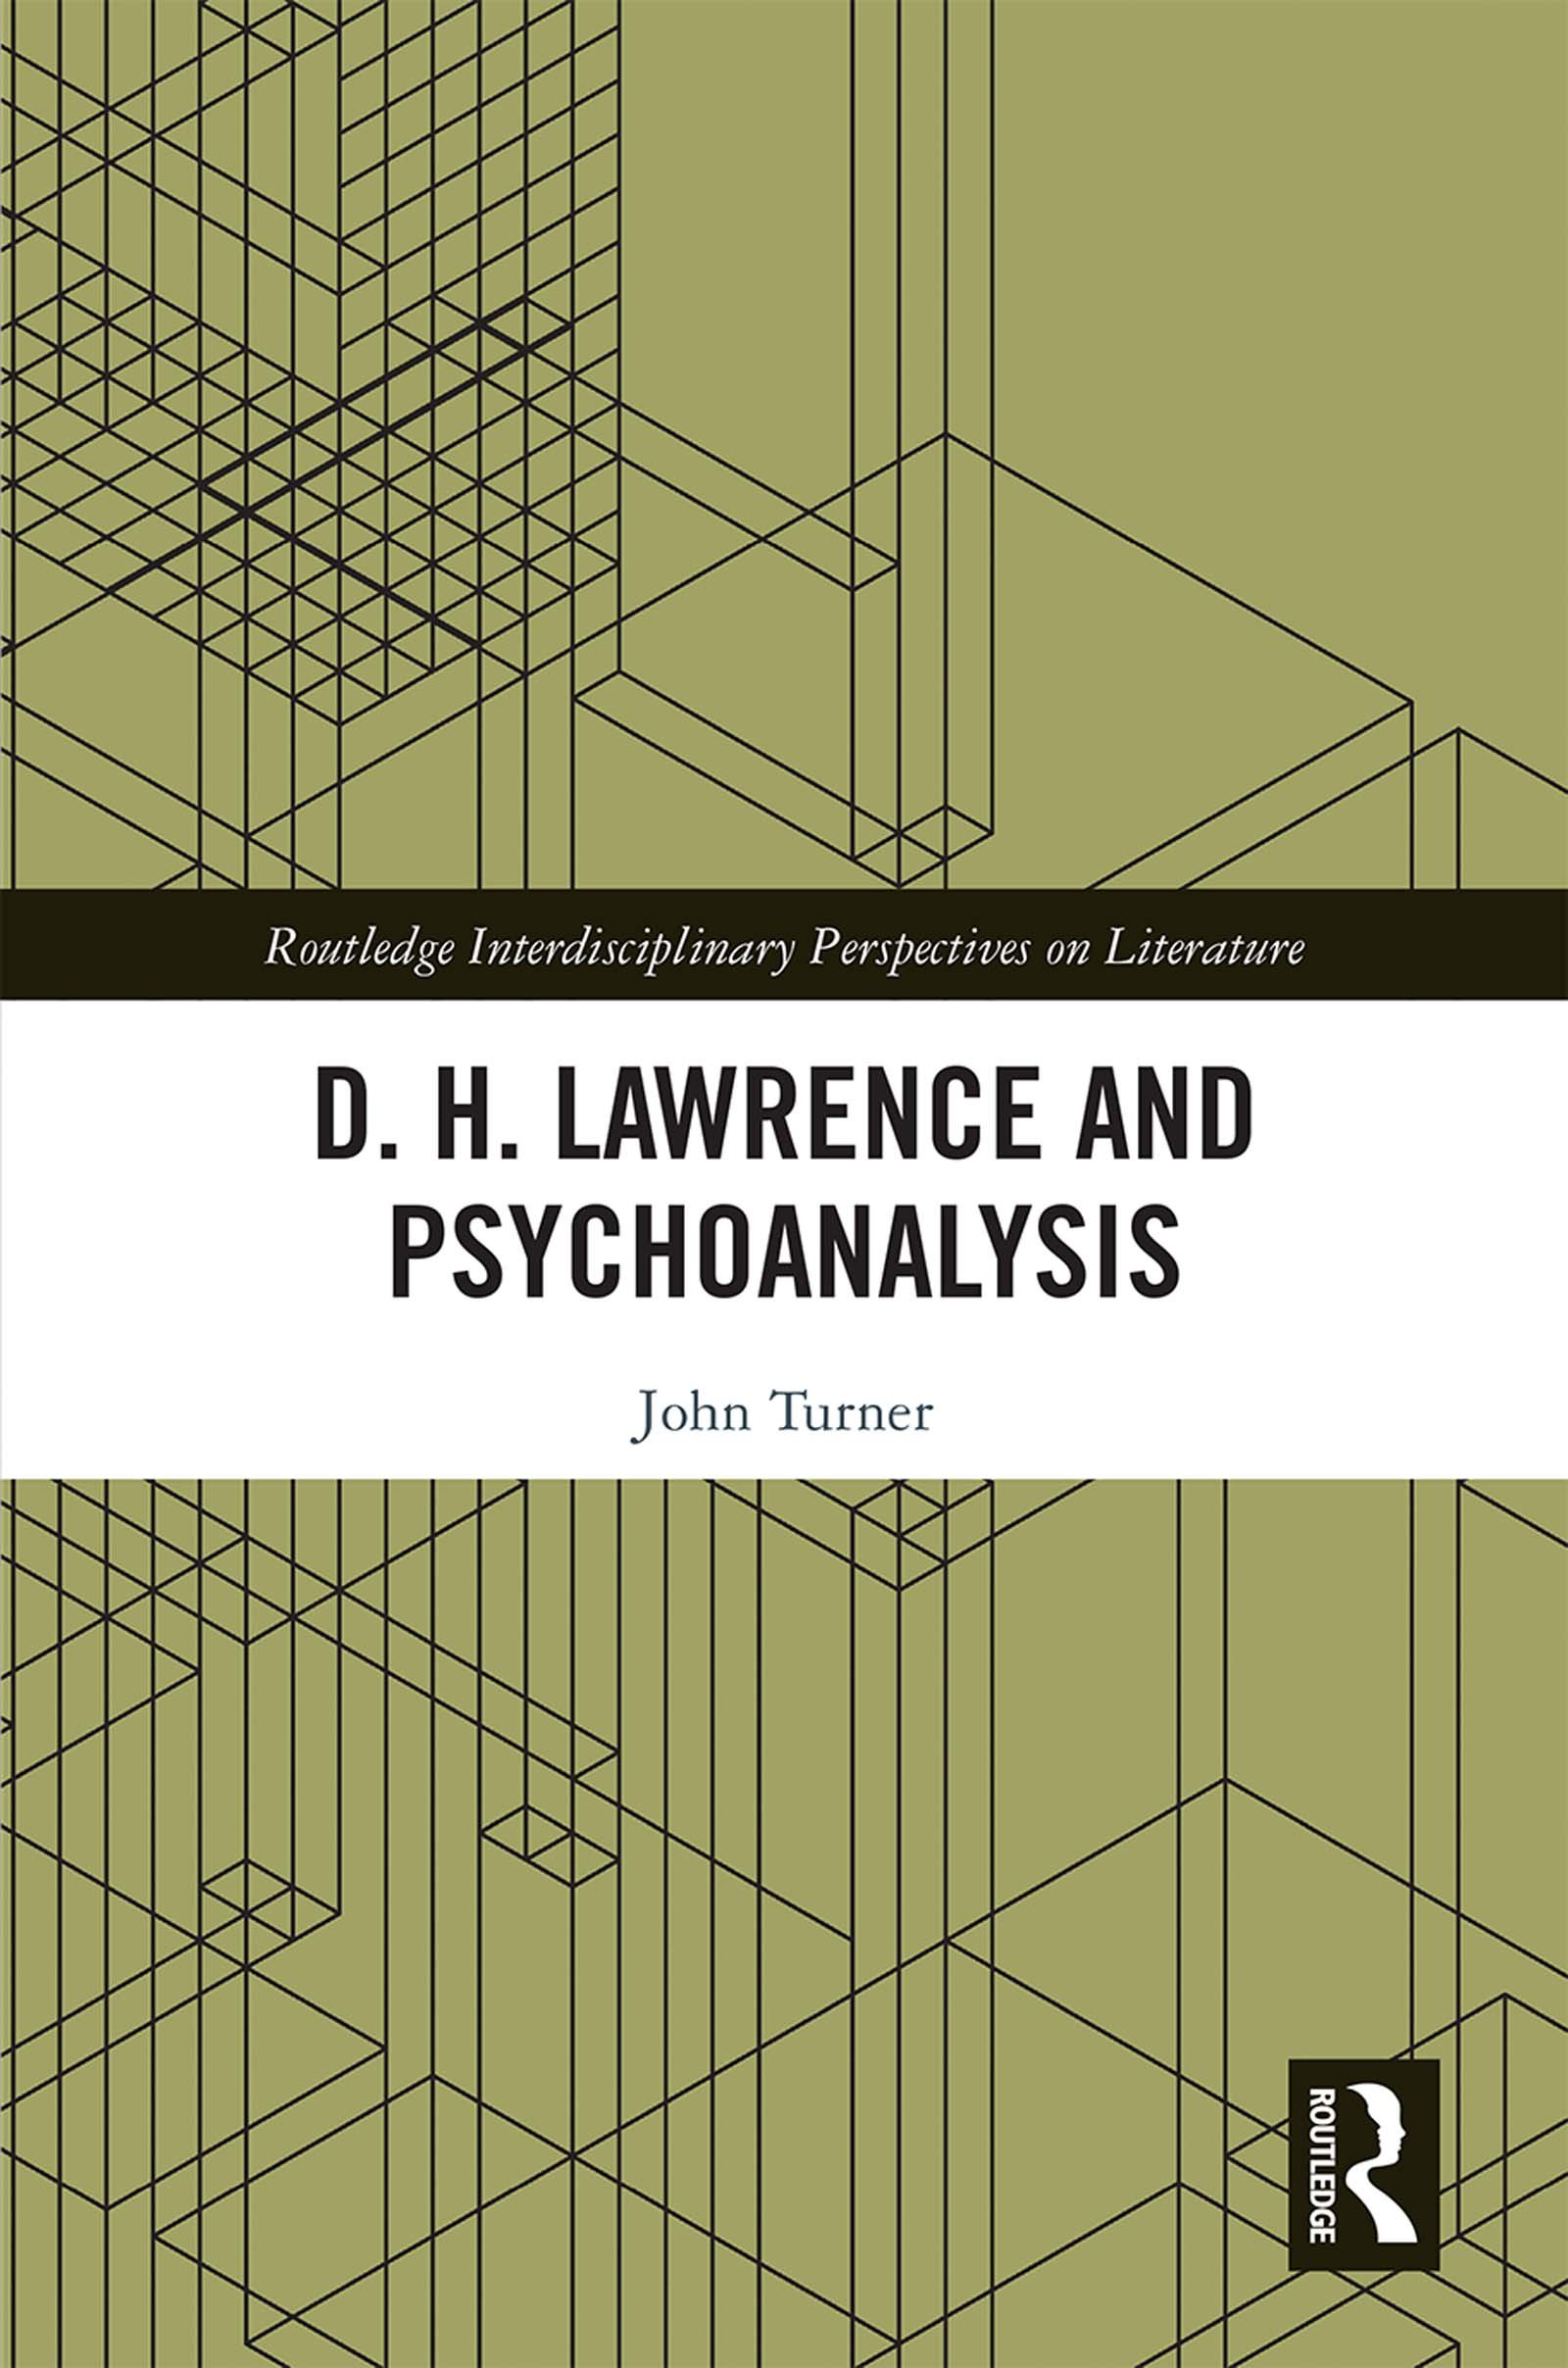 D. H. Lawrence and Psychoanalysis book cover